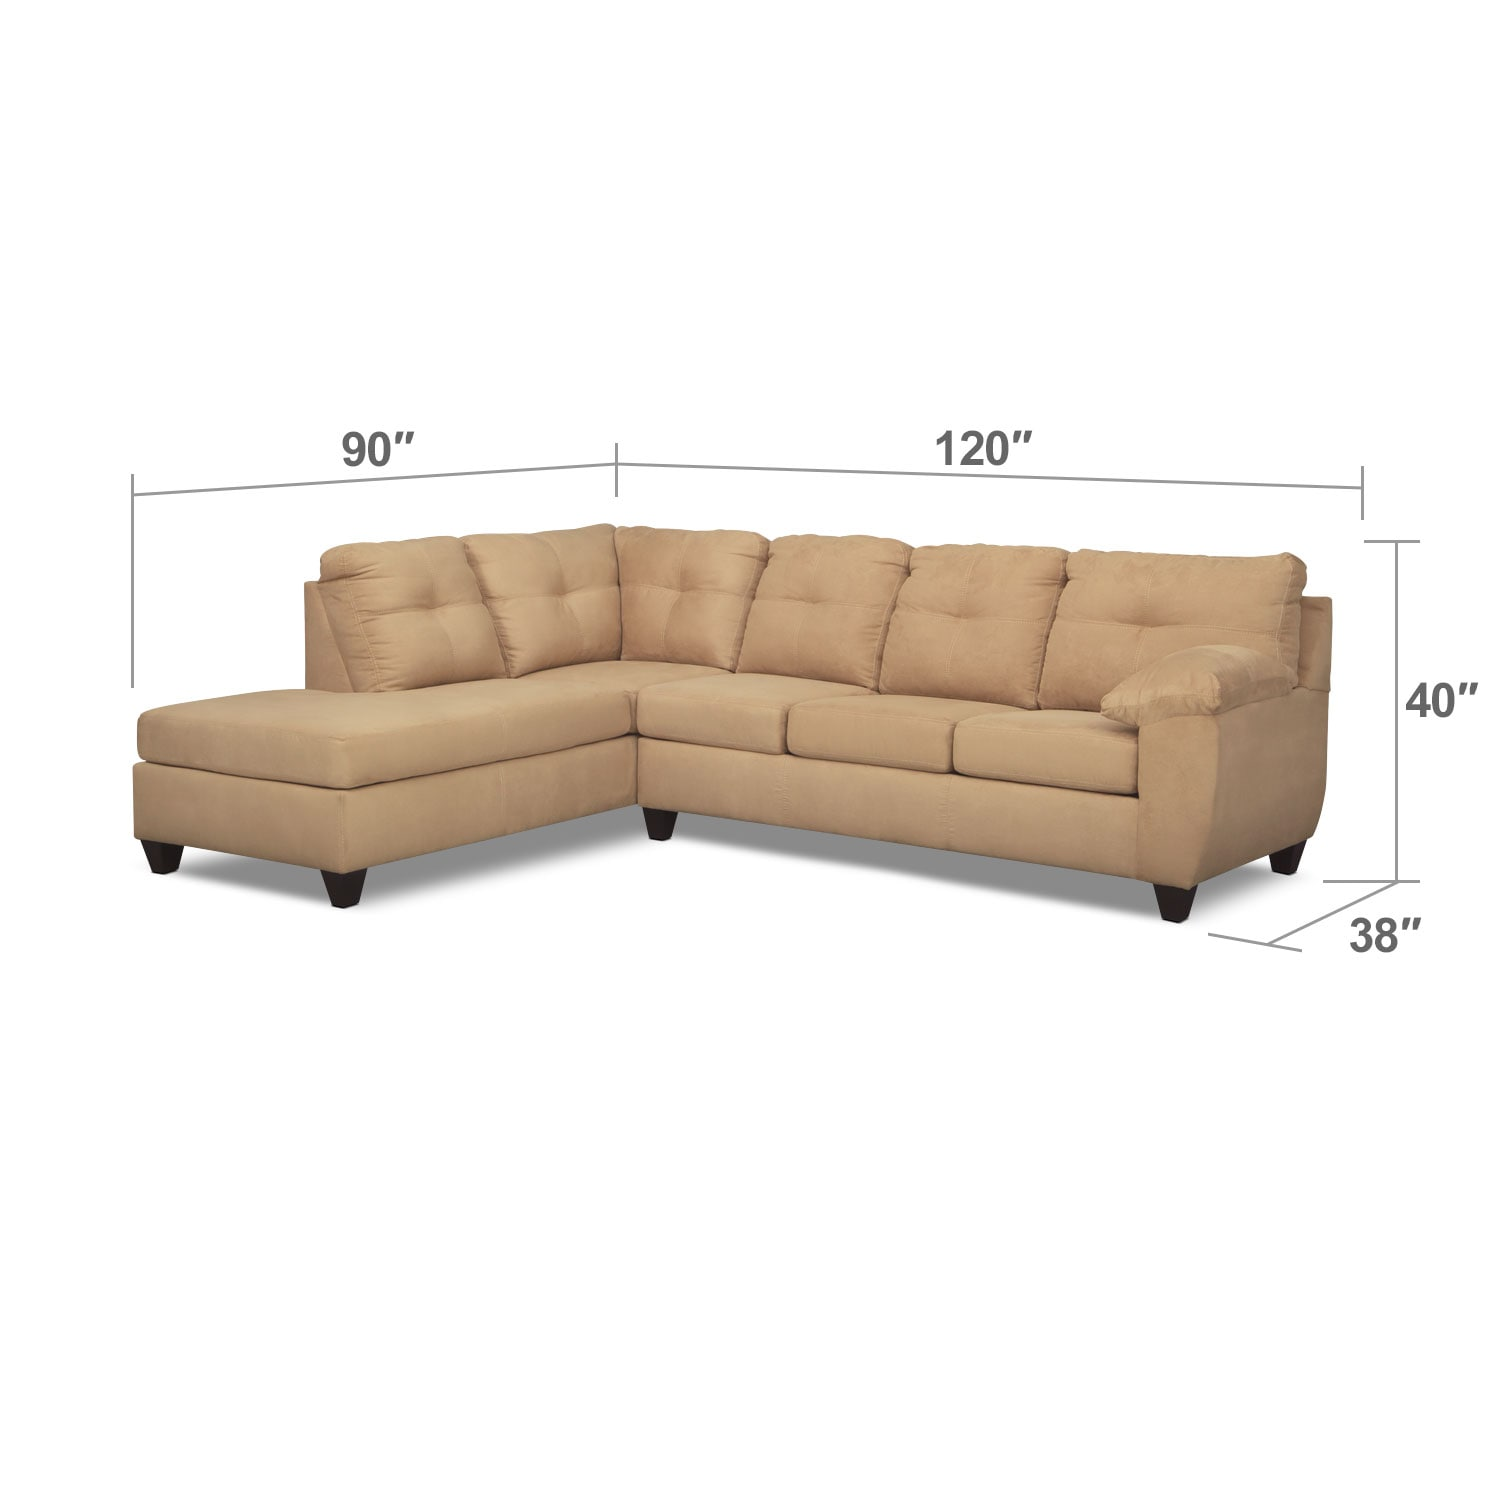 Living Room Furniture - Rialto 2-Piece Sectional with Left-Facing Chaise - Camel